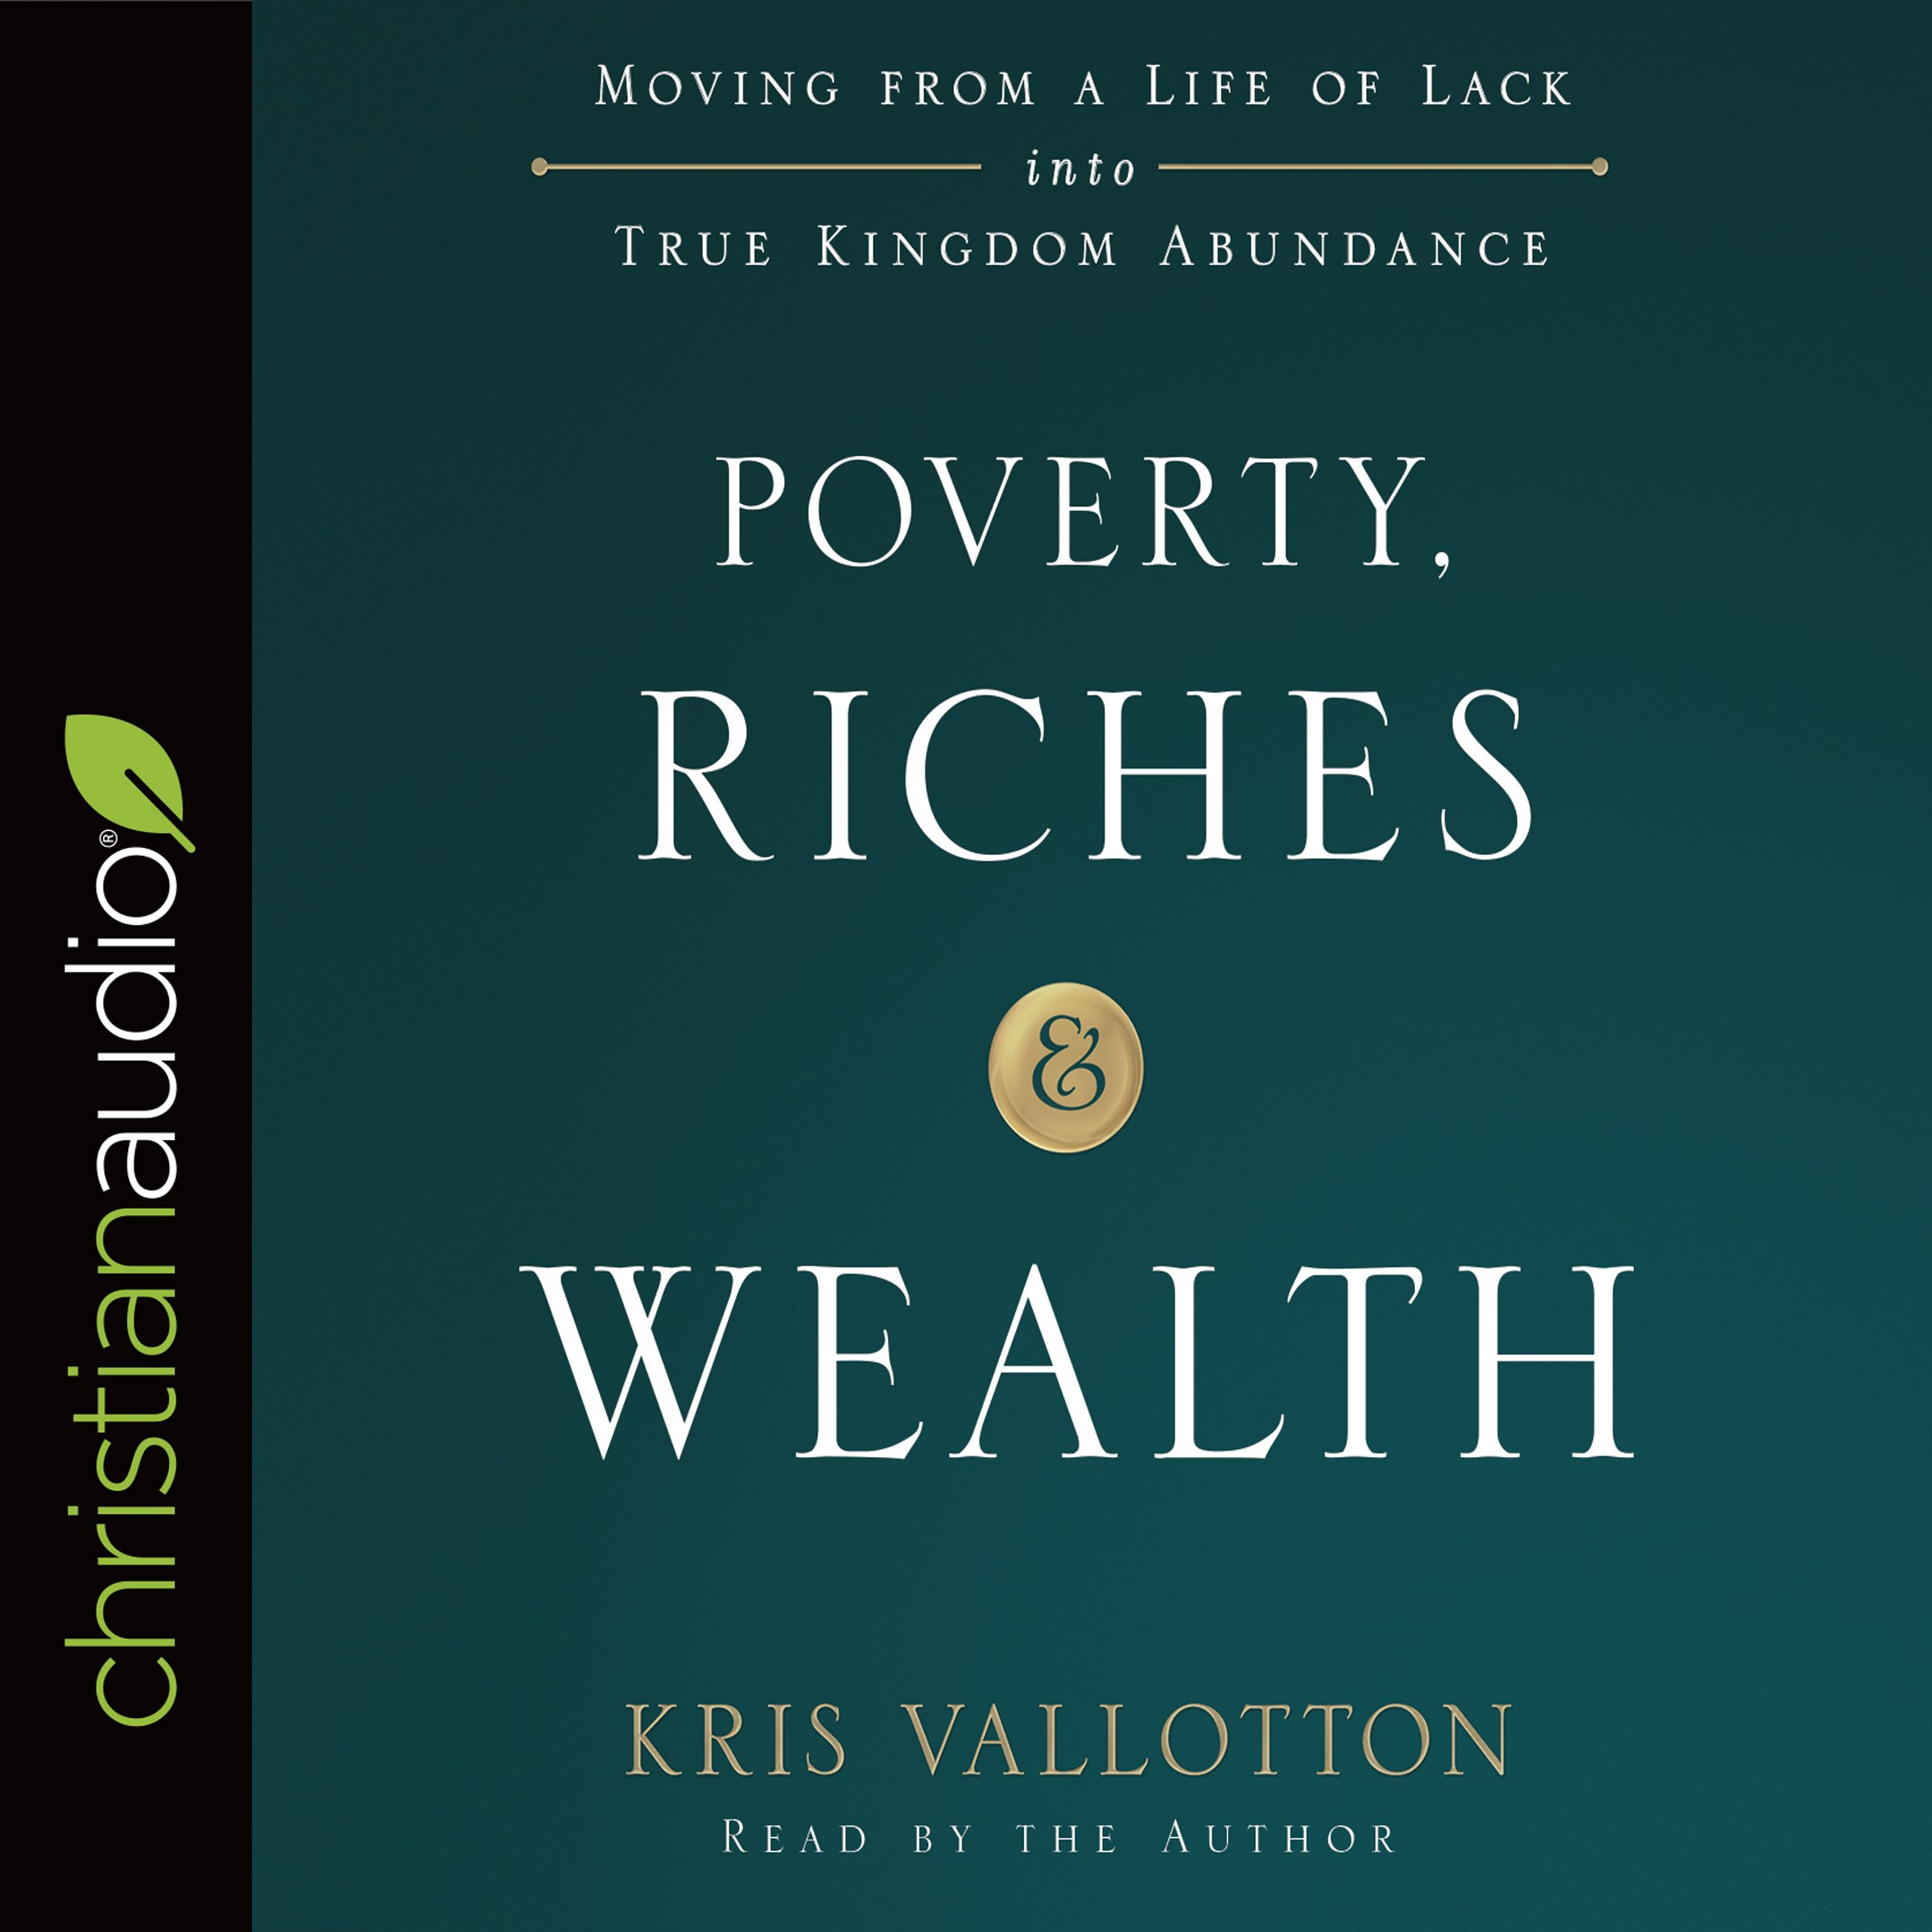 Download Poverty, Riches, And Wealth: Moving From A Life Of Lack Into True Kingdom Abundance 